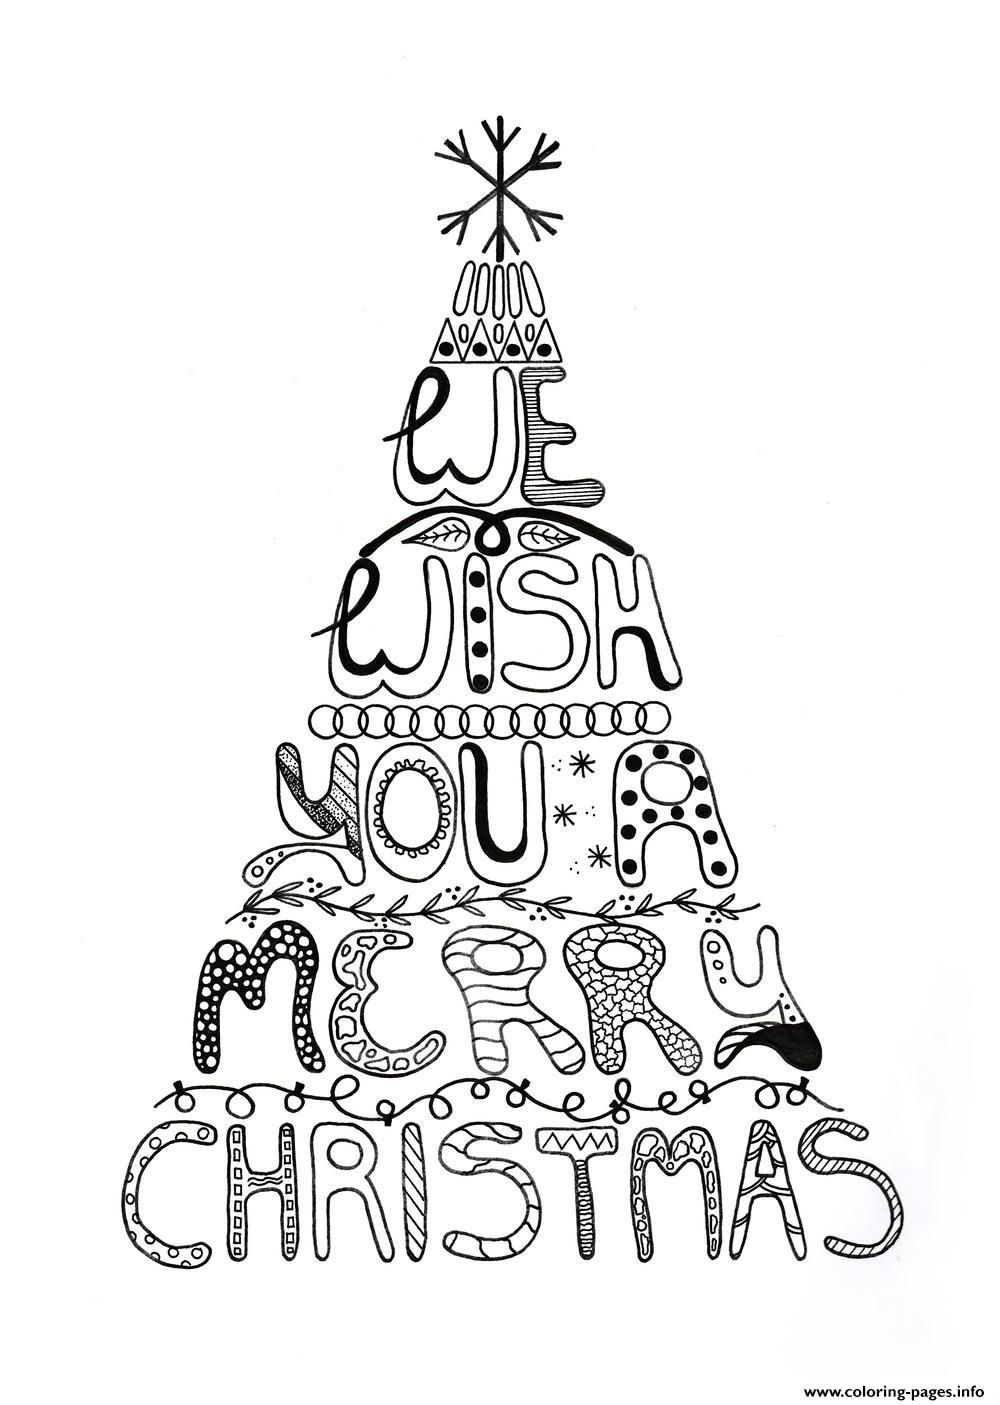 We Wish You A Merry Christmas Tree Coloring Page Merry Christmas Coloring Pages Christmas Tree Coloring Page Printable Christmas Coloring Pages